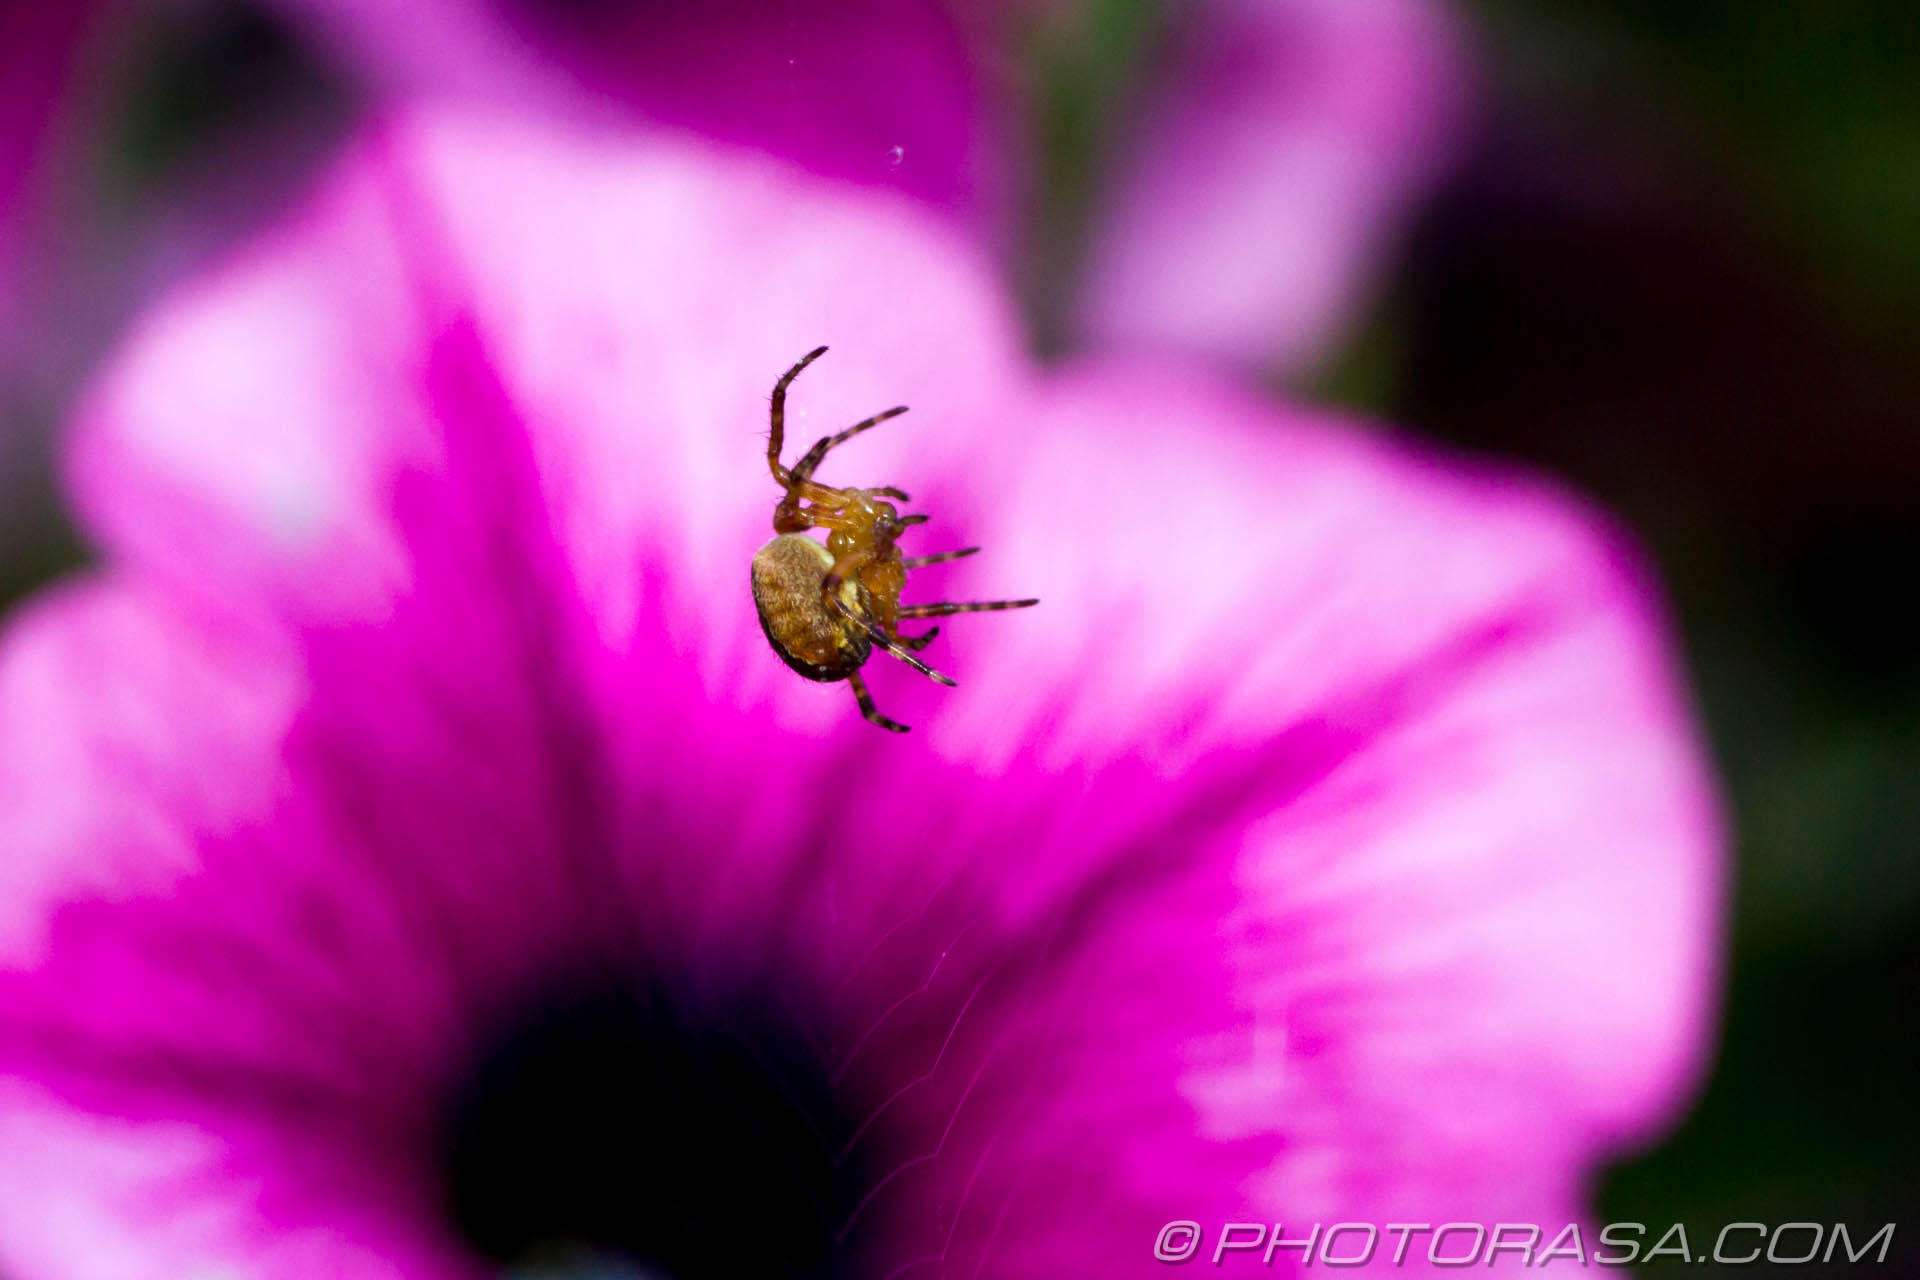 https://photorasa.com/spider-petunias/spider-and-petunia/